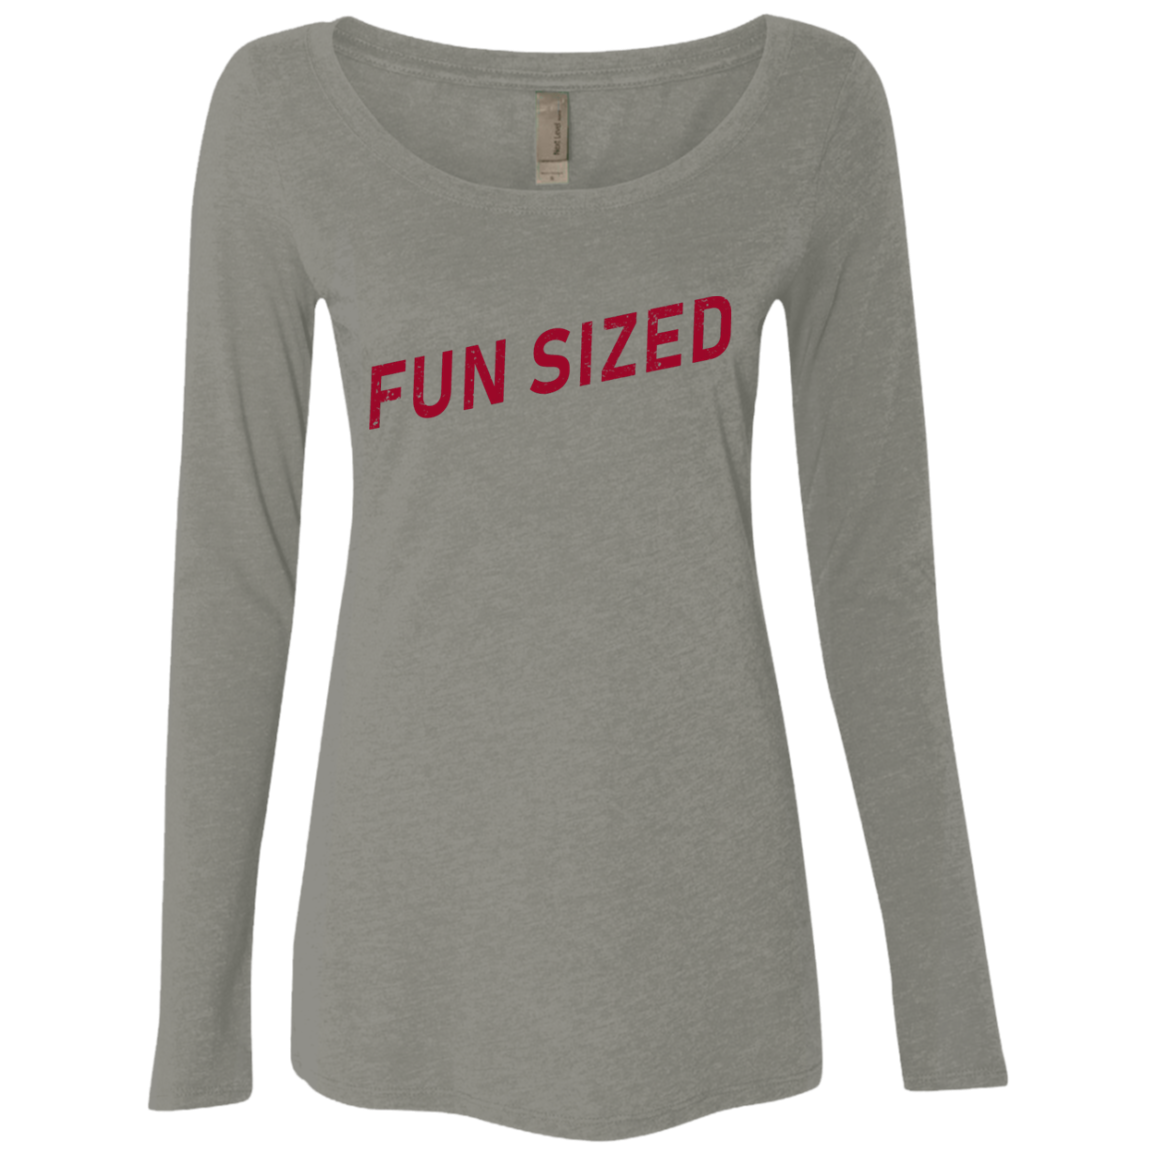 Fun Sized Women's Long Sleeve Tee